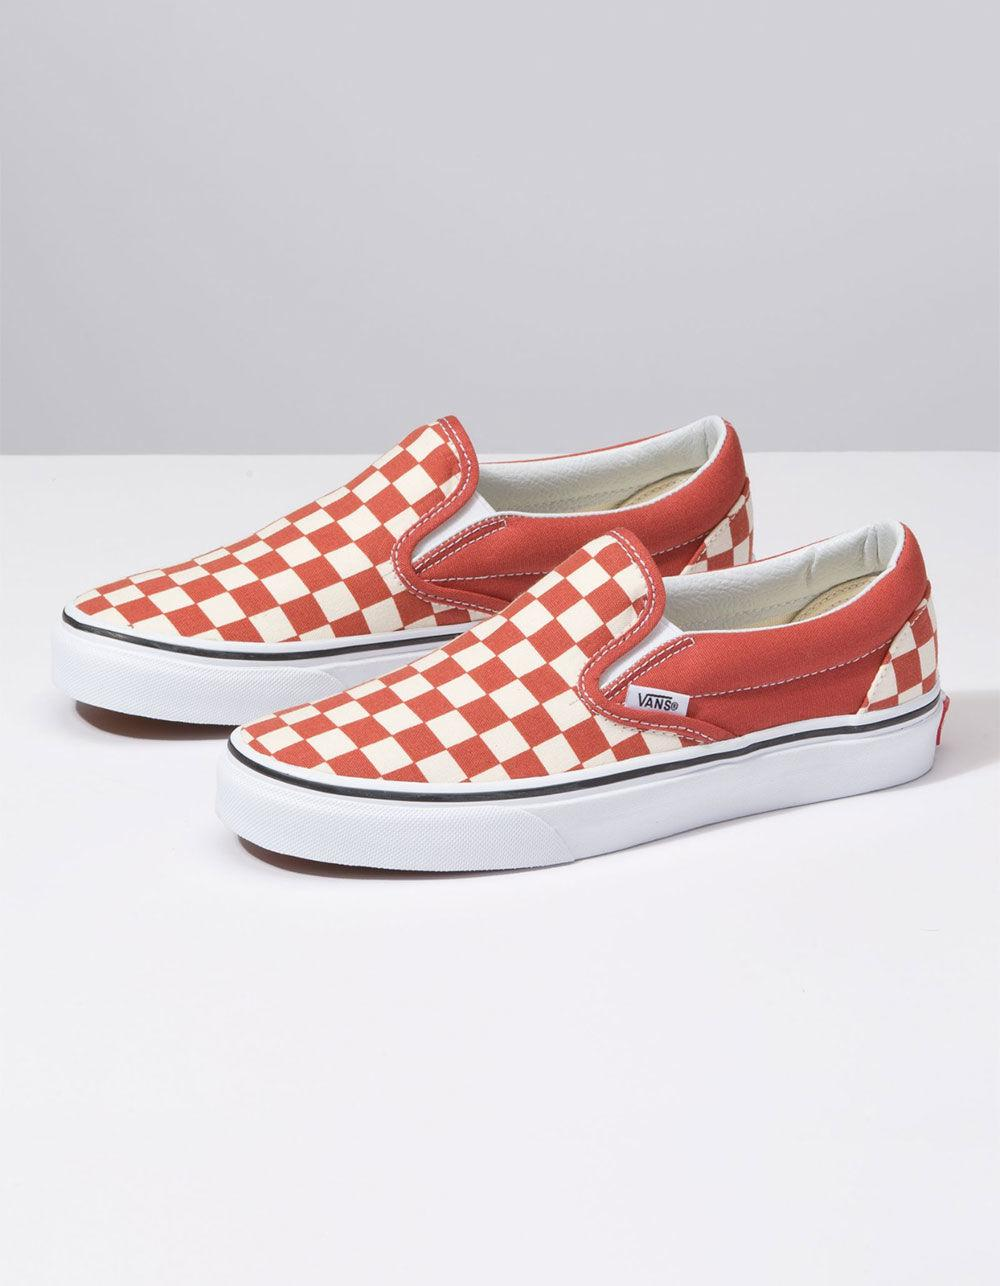 3b75930fefb351 Lyst - Vans Checkerboard Classic Slip-on Hot Sauce   True White Womens Shoes  in White